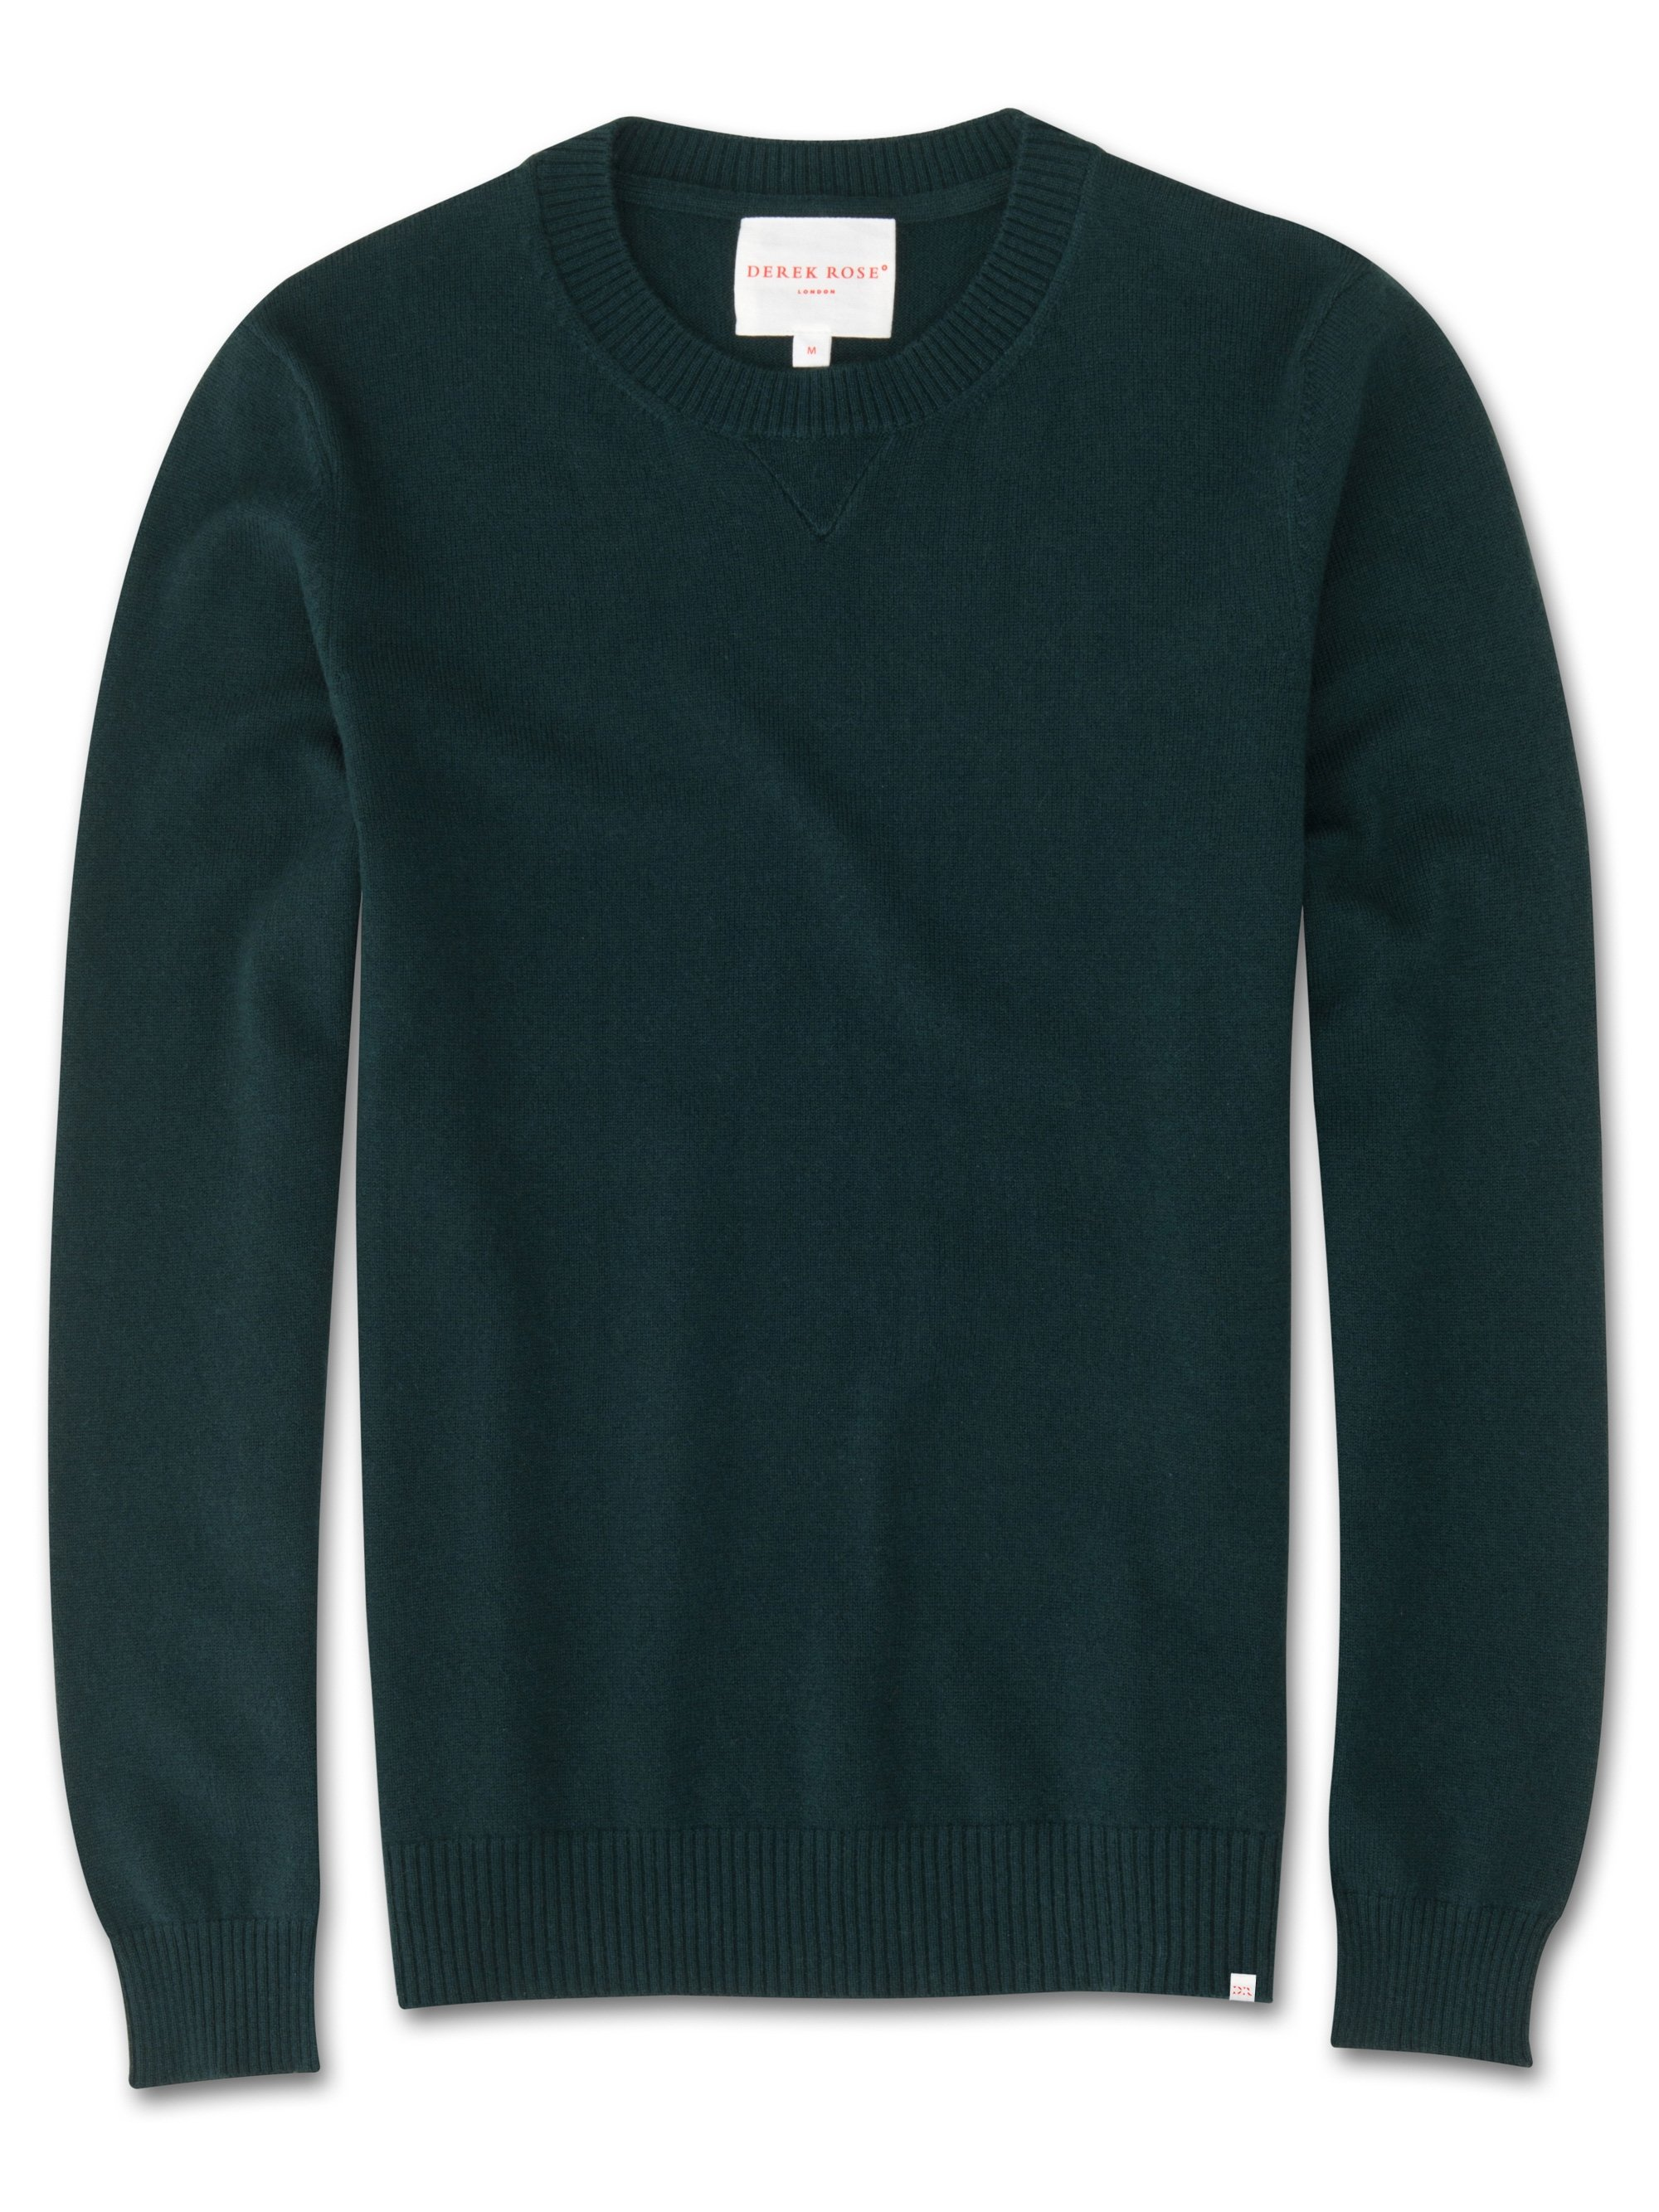 Men's Cashmere Sweater Finley Pure Cashmere Green